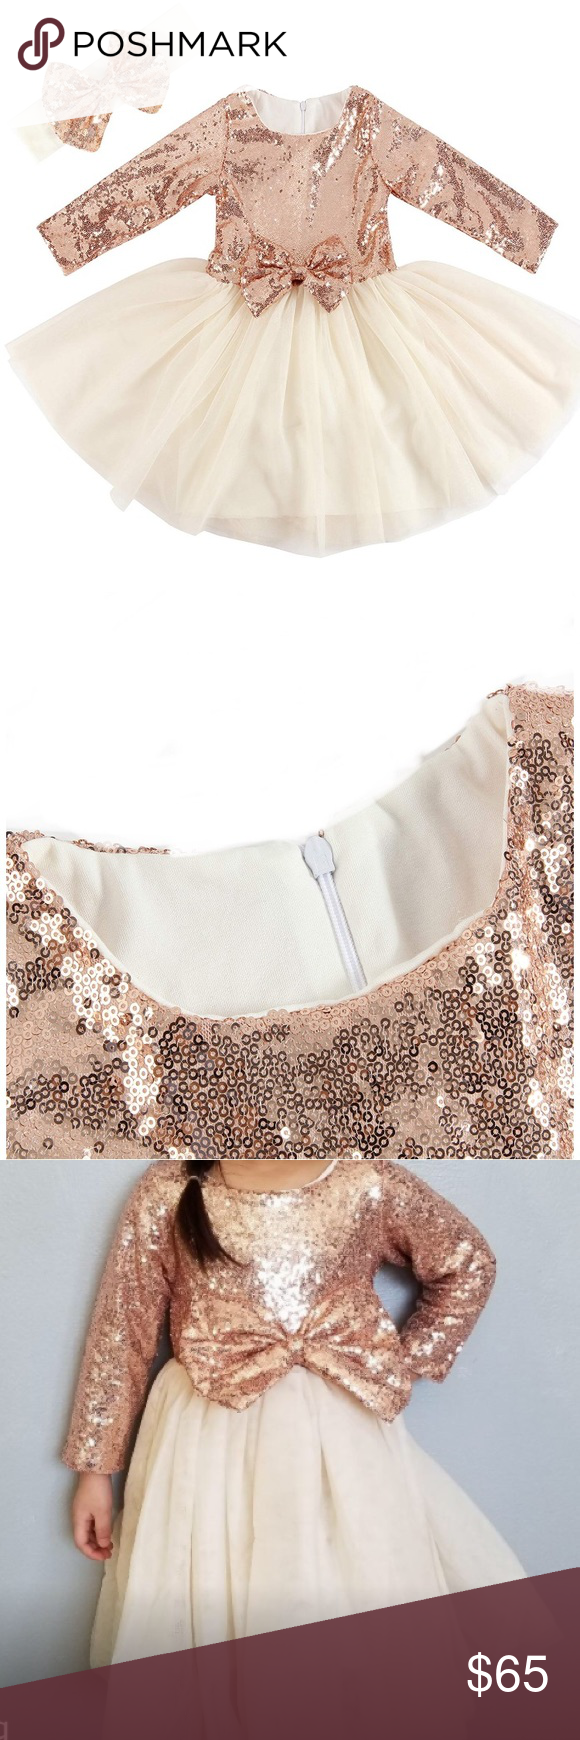 12m 4t Sequin And Tulle Holiday Dress Headband Rose Gold Sequin Long Sleeve Dress With Creamy Tulle Skirt Dresses Long Sleeve Sequin Dress Clothes Design [ 1740 x 580 Pixel ]